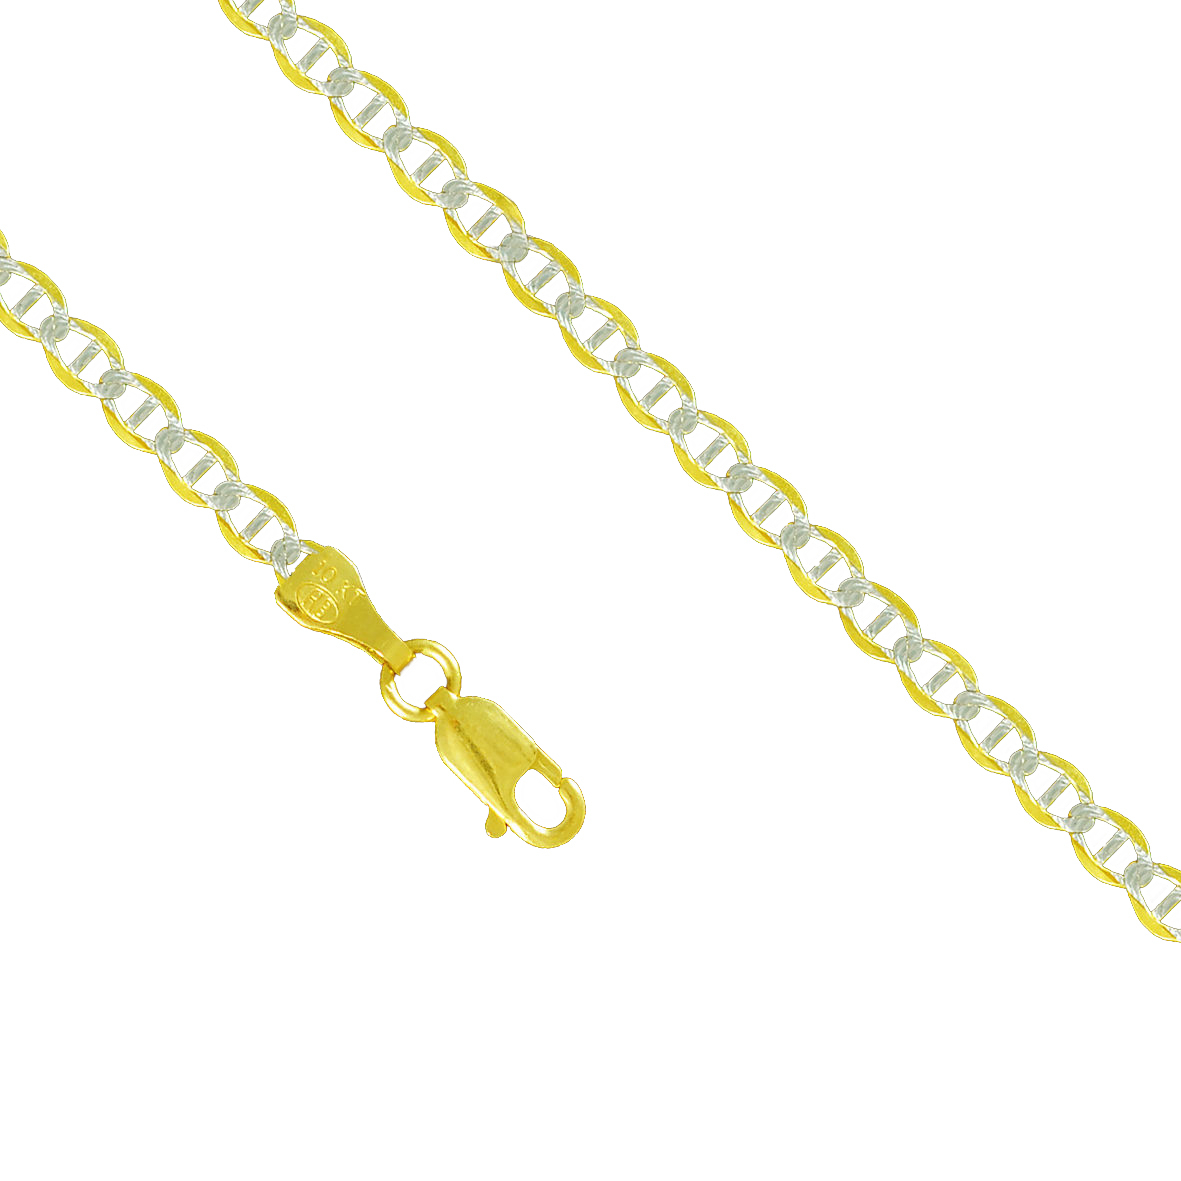 10K Yellow Gold 4.0mm Mariner Anchor Diamond Cut Pave Necklace Lobster Clasp (26 Inches) by Paradise Jewelers